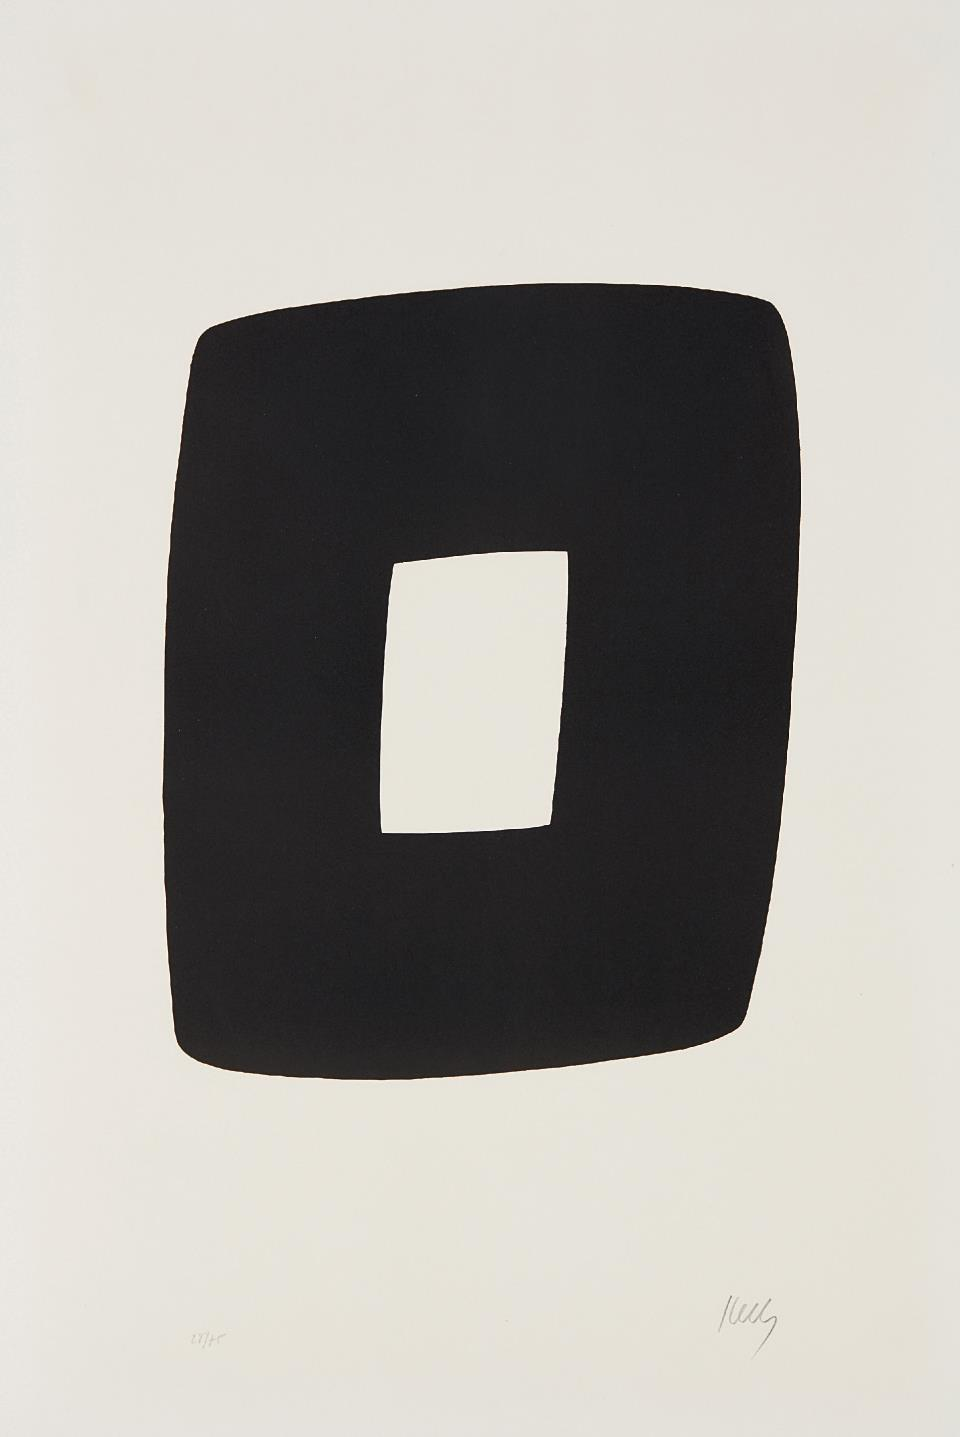 Ellsworth Kelly-Black With White-1965